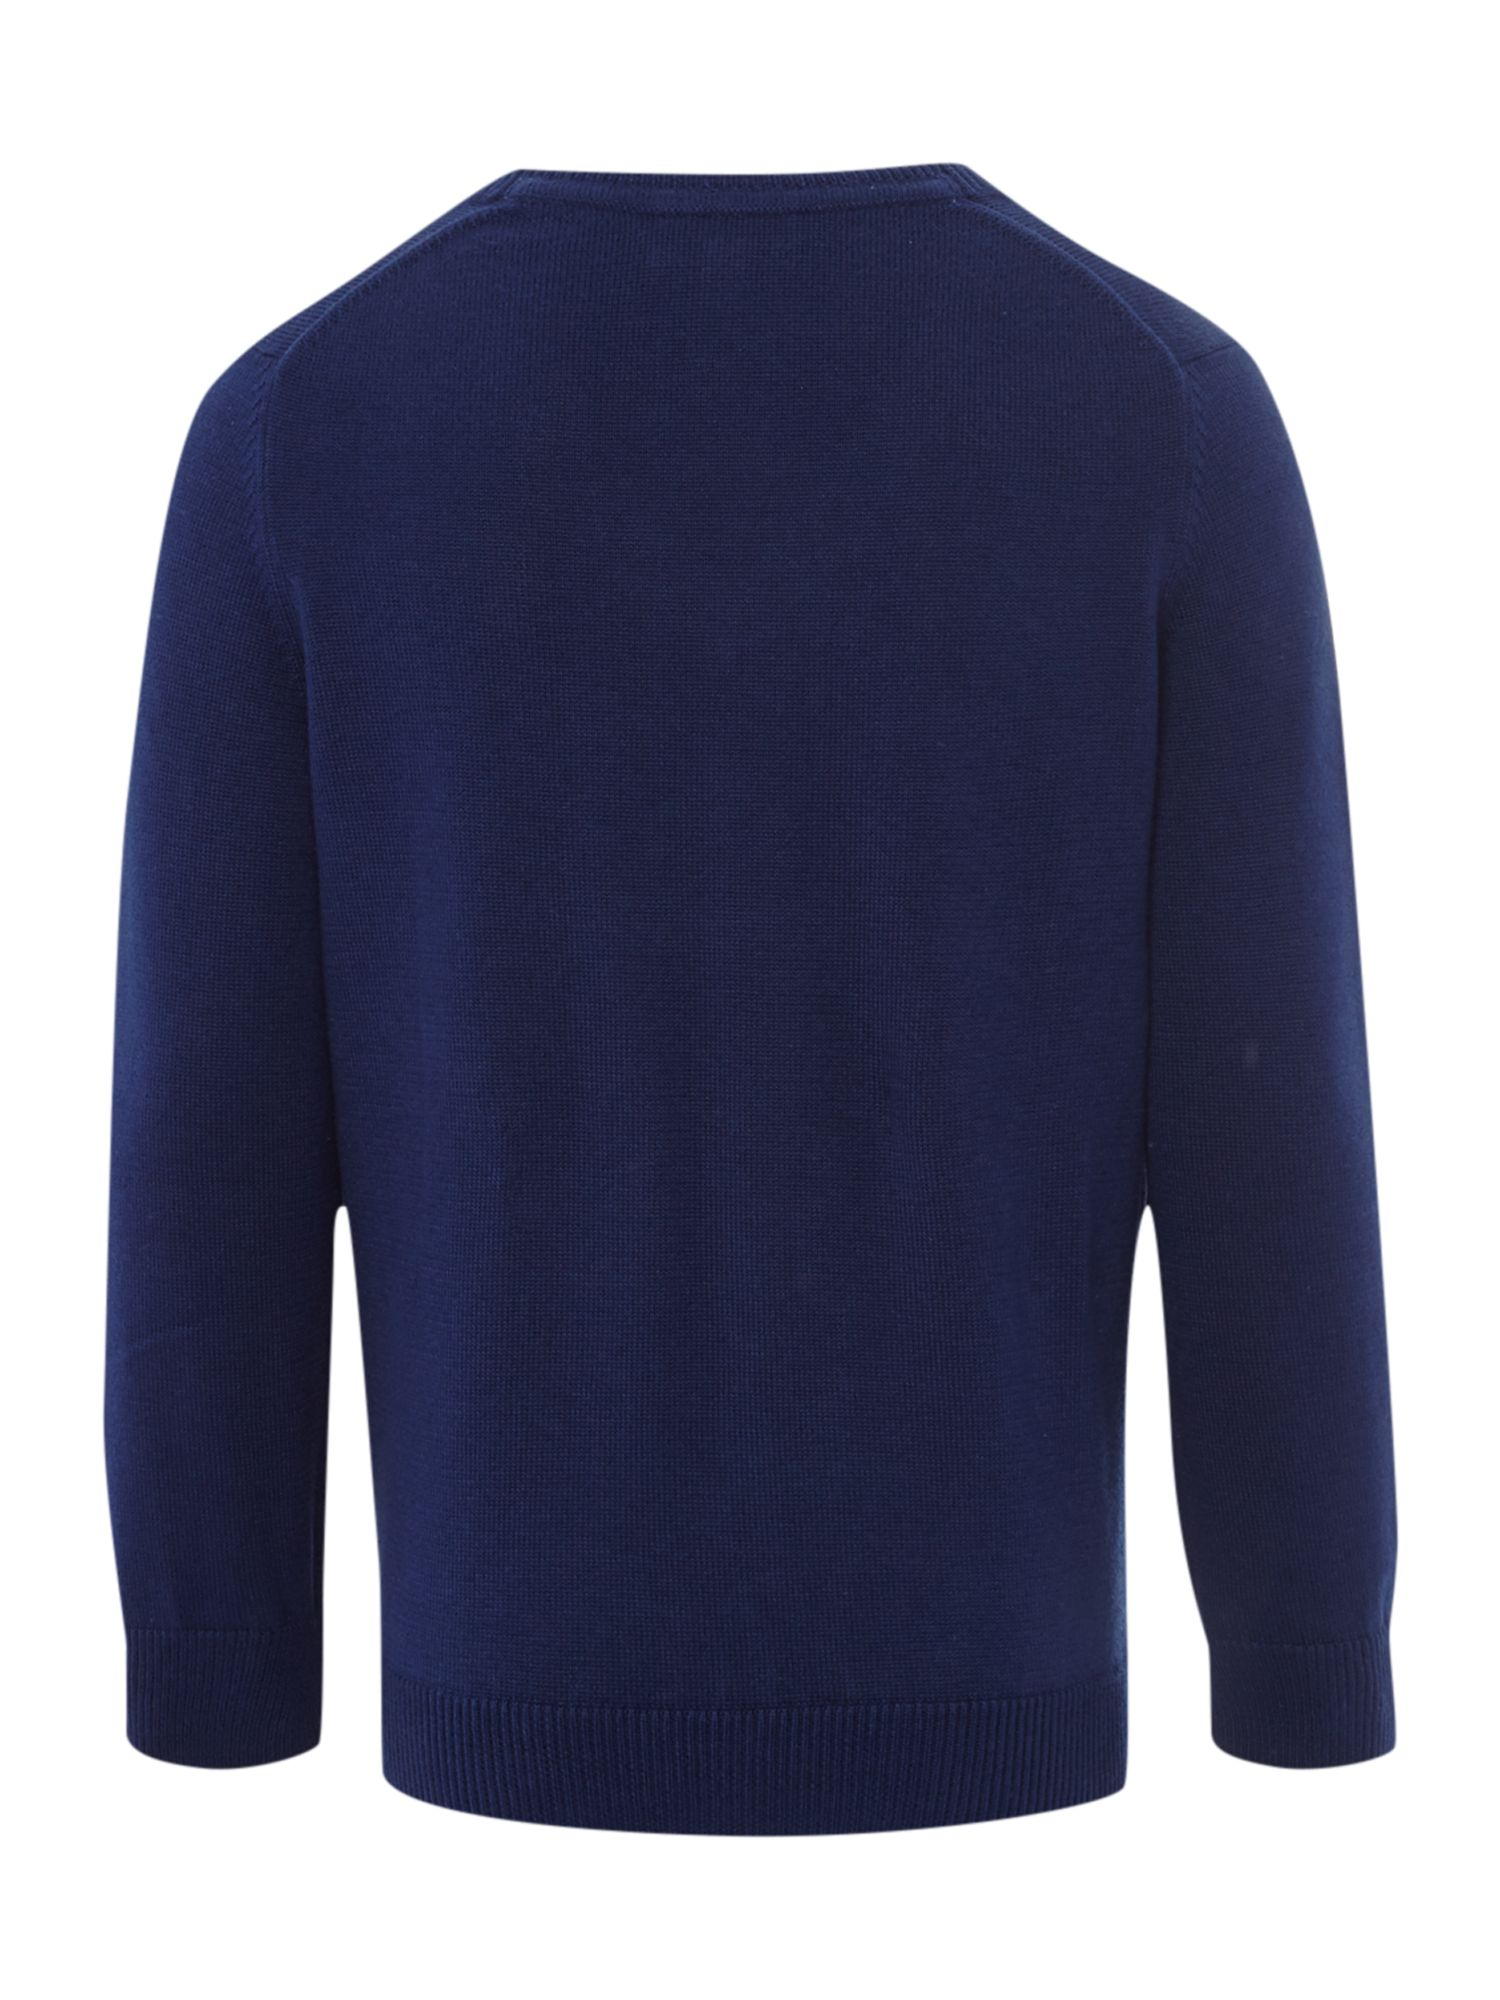 Boys v neck knitted jumper